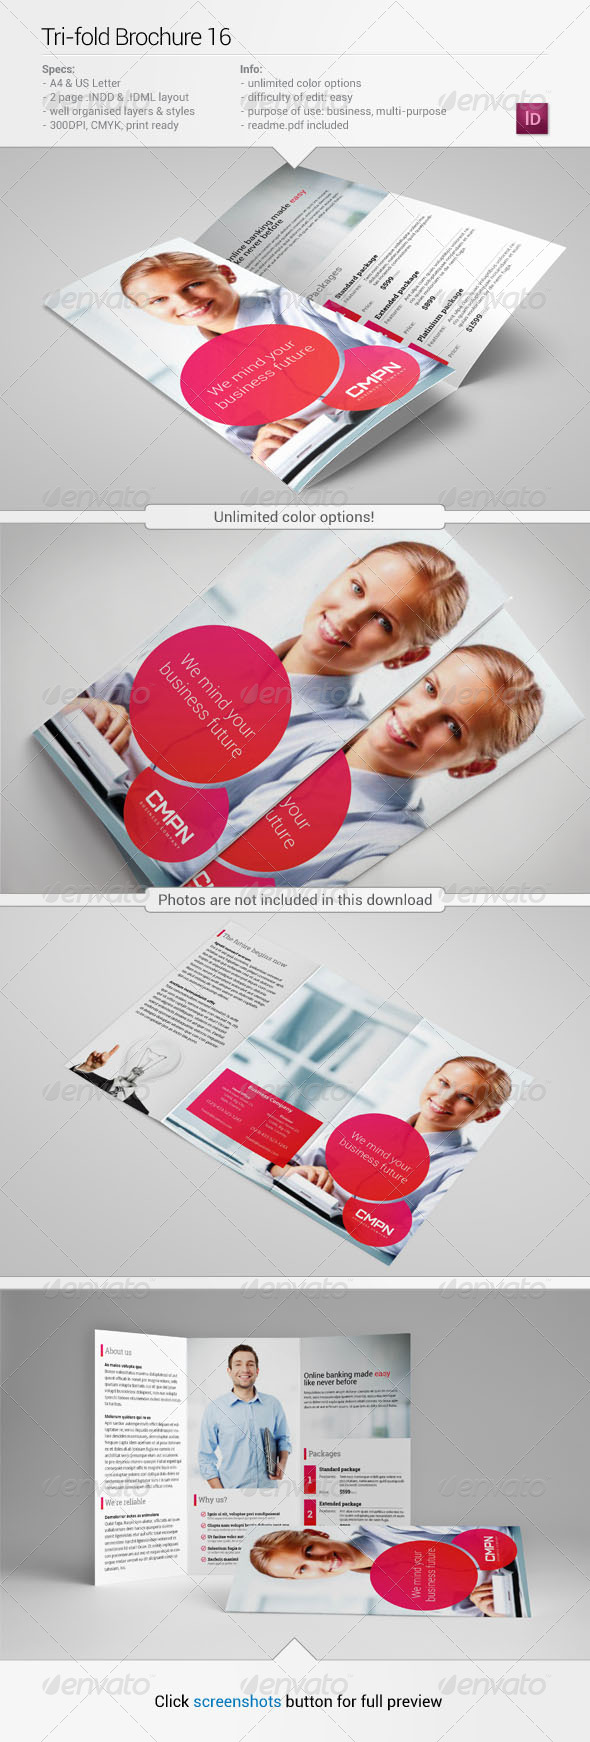 GraphicRiver Tri-Fold Brochure 16 5923238